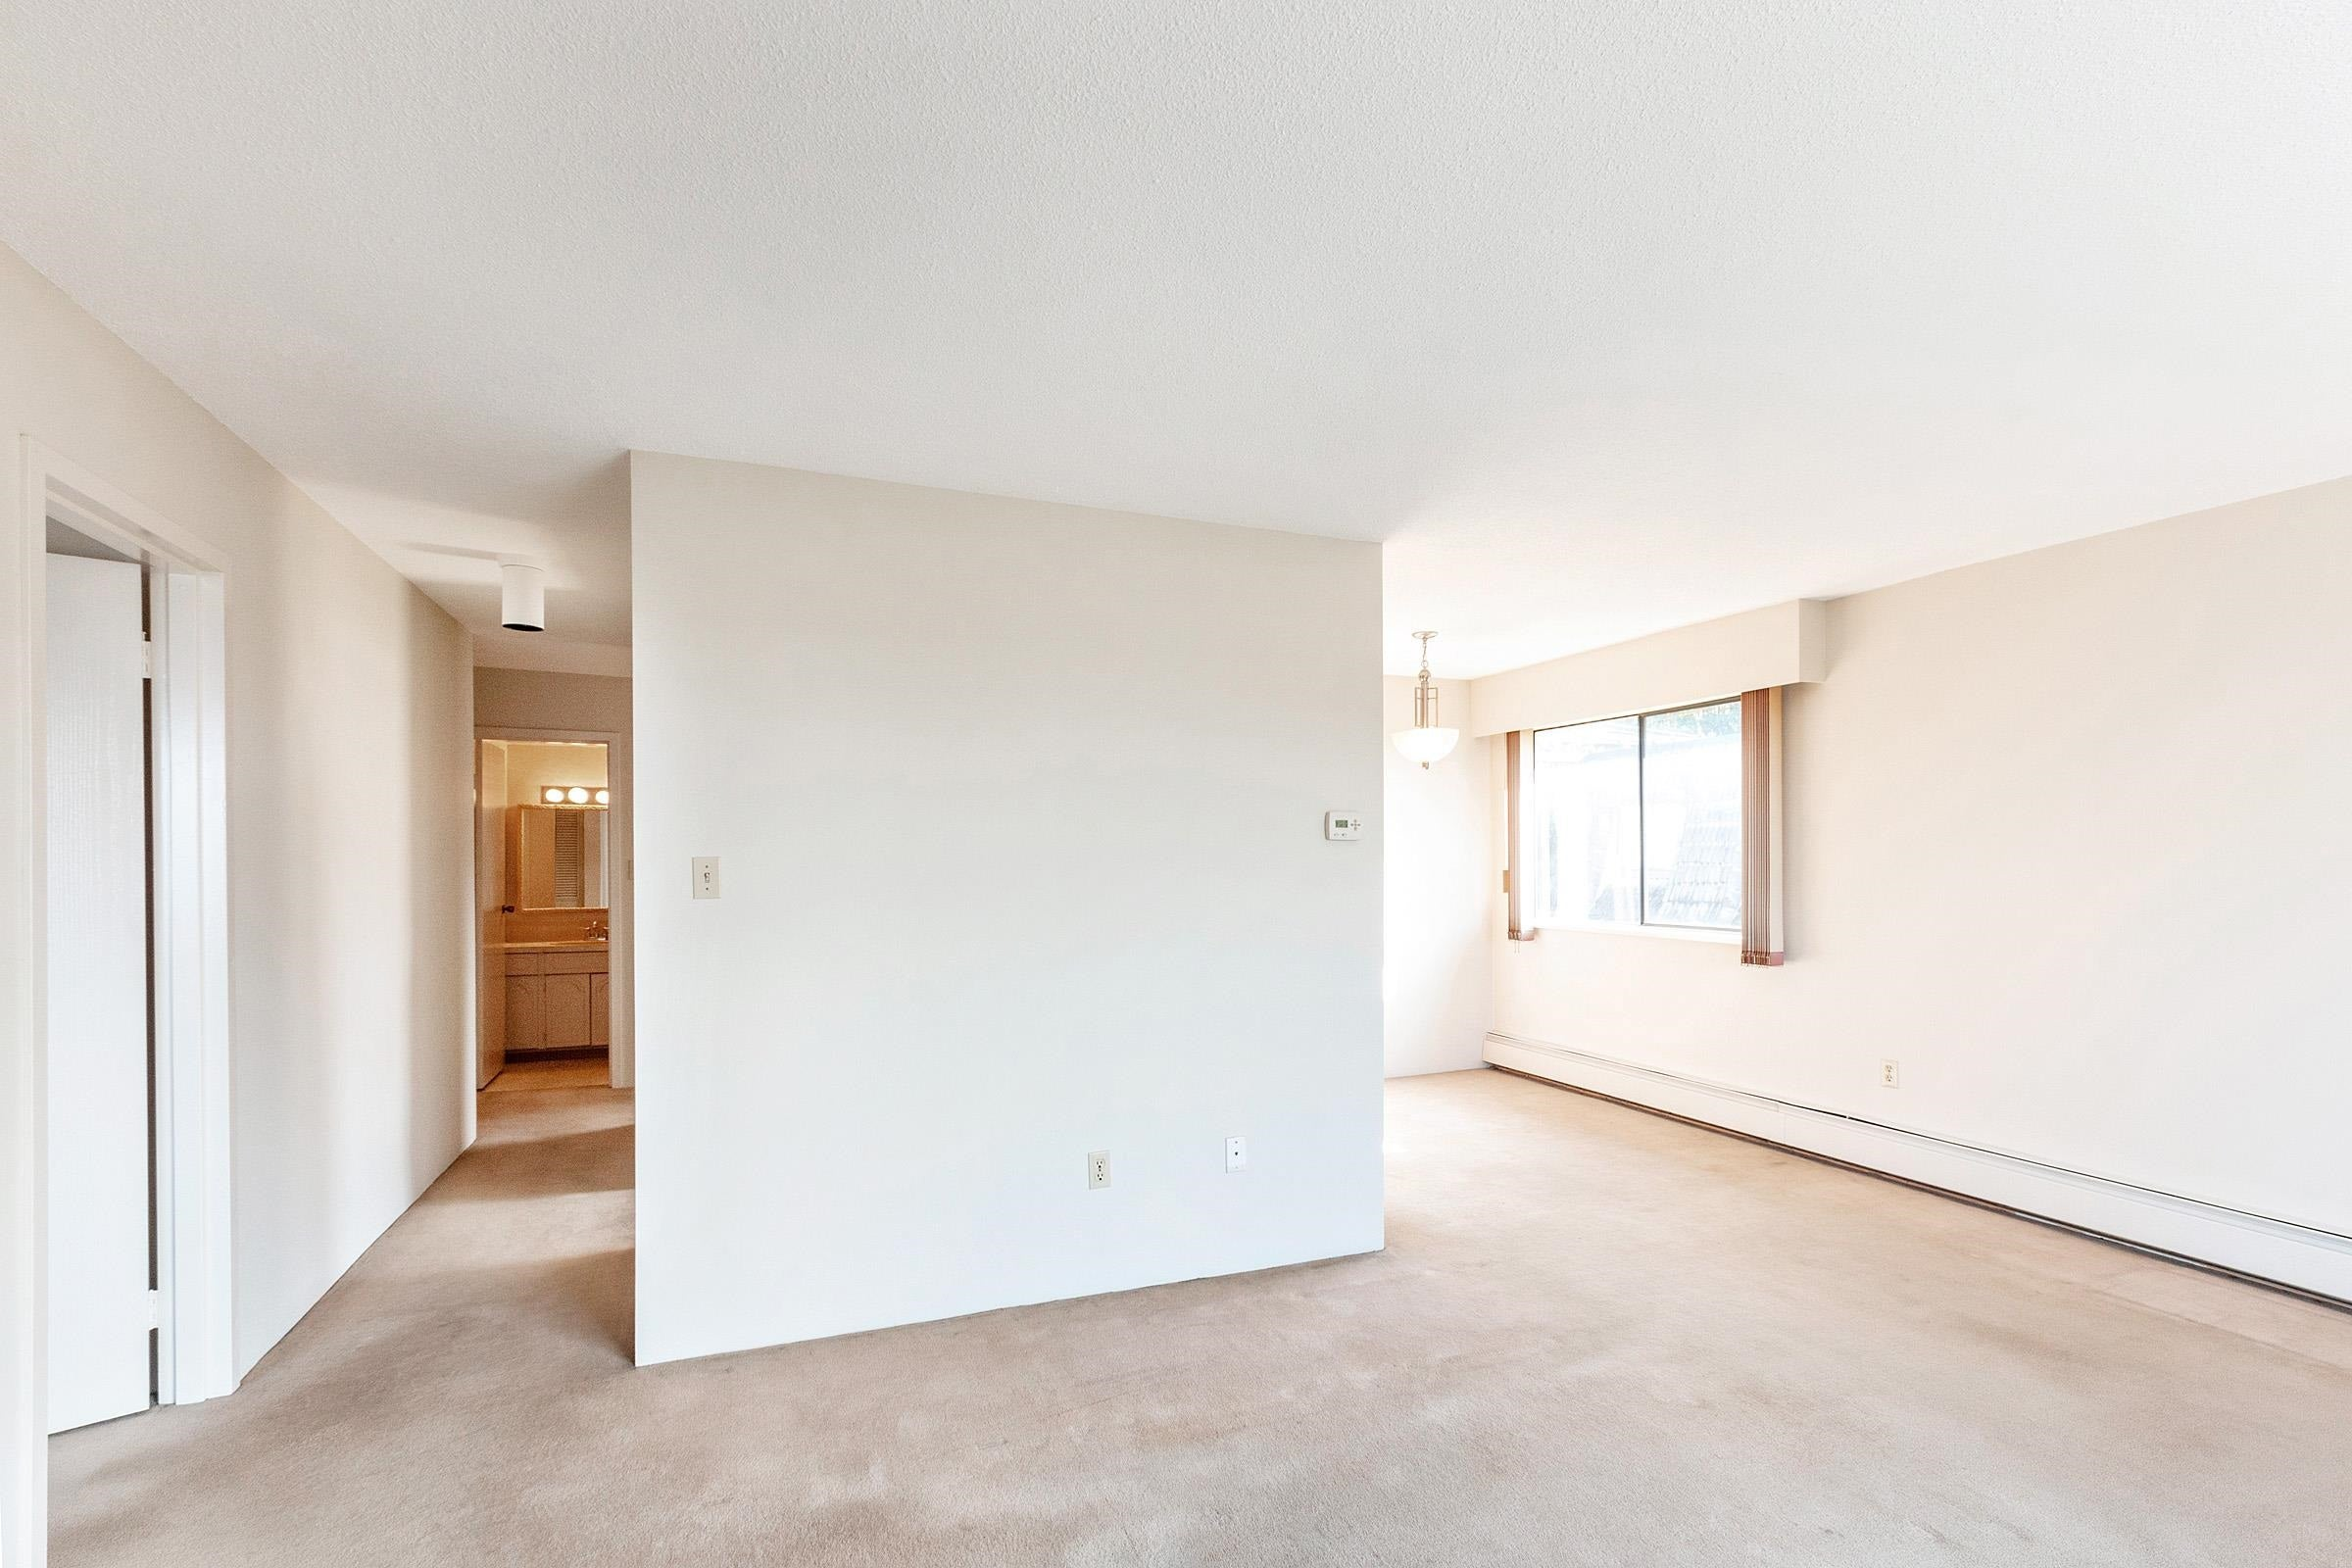 301 264 W 2ND STREET - Lower Lonsdale Apartment/Condo for sale, 2 Bedrooms (R2625527) - #5